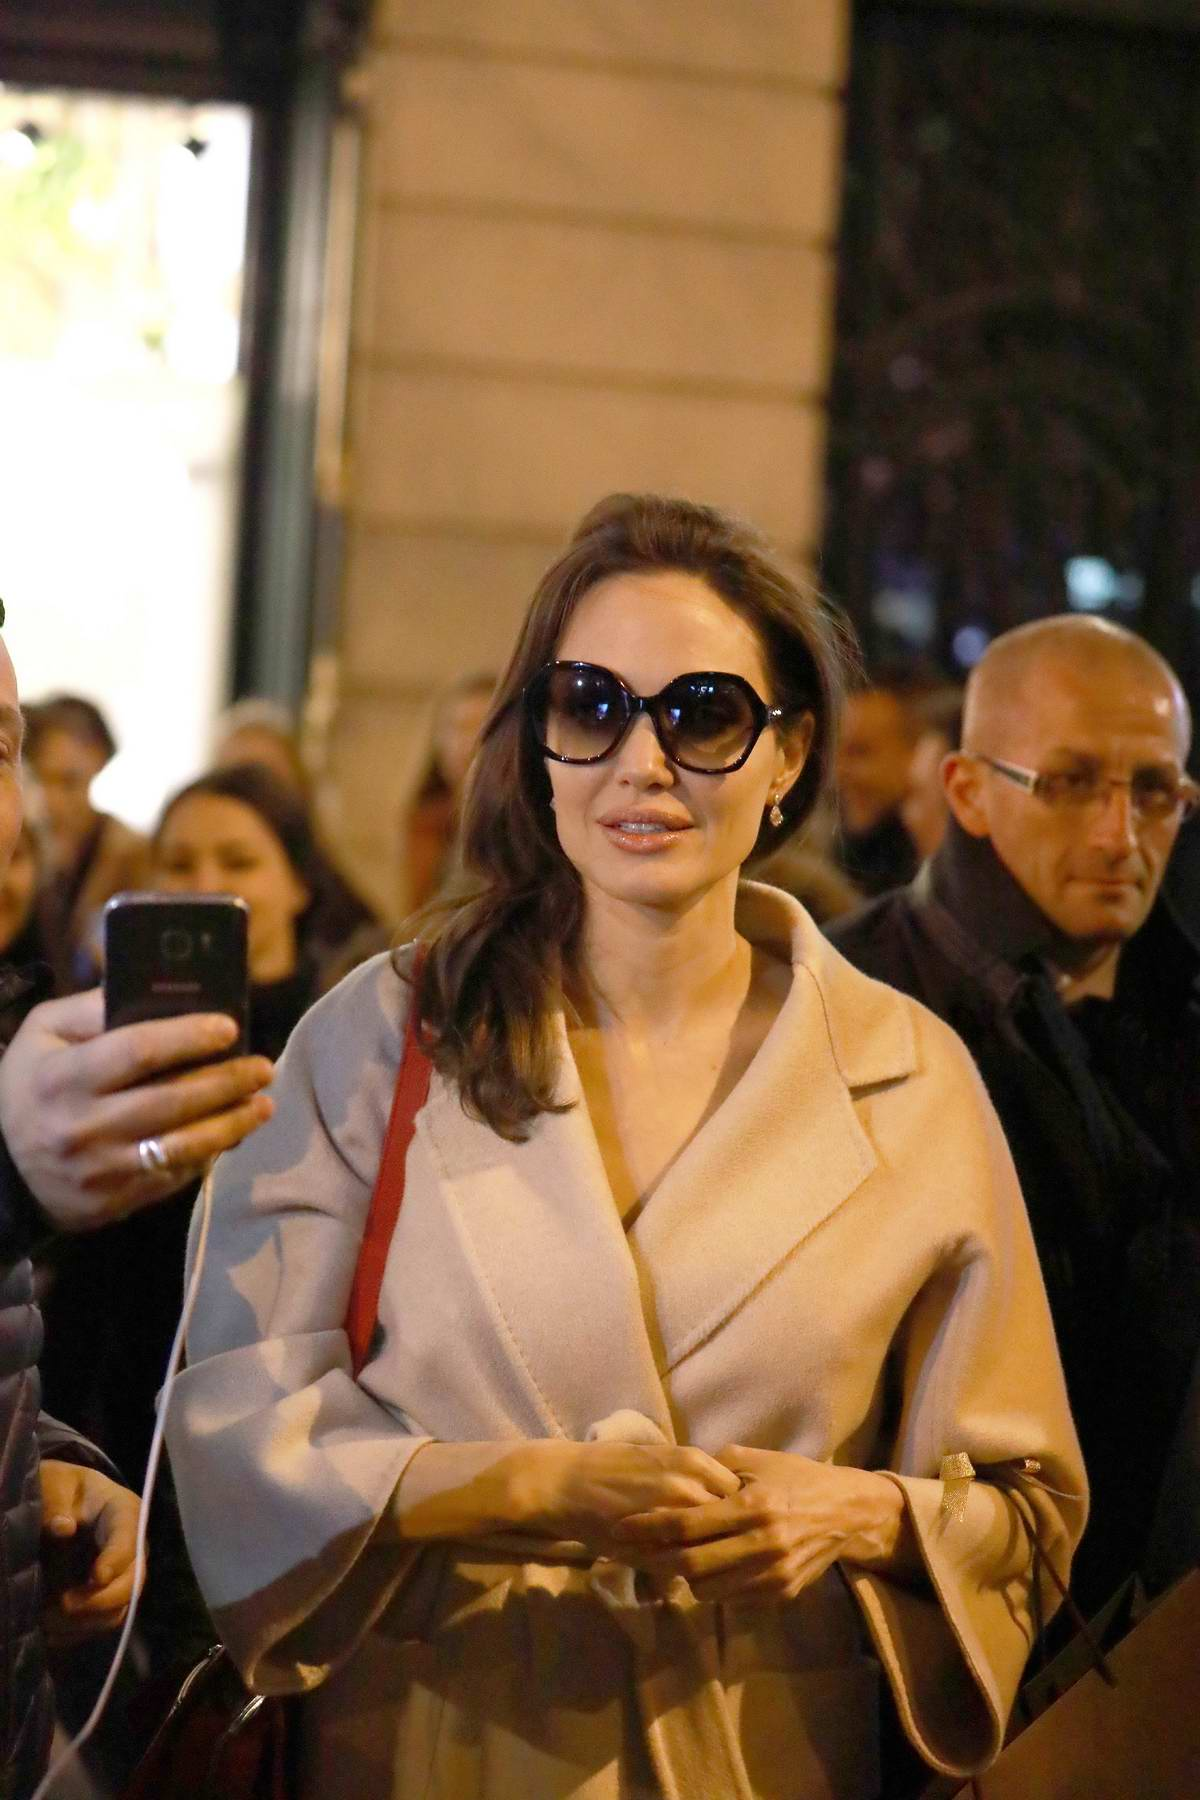 Angelina Jolie makes an appearance at Guerlain Perfumes shop on the Champs-Elysées in Paris, France